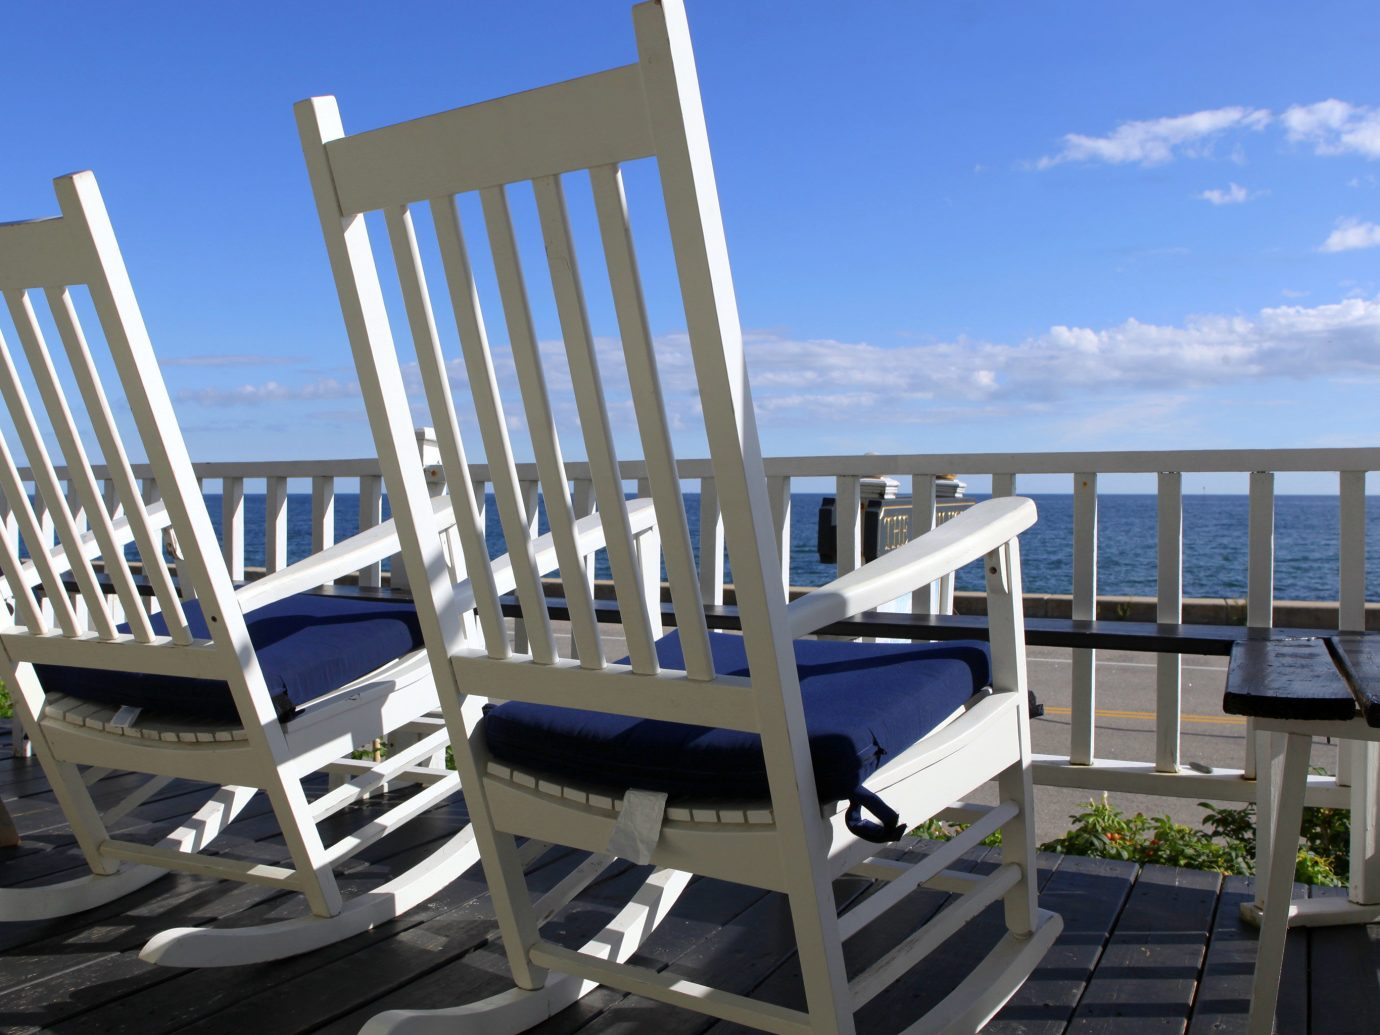 Balcony Beachfront Country Hotels Inn Patio Scenic views Waterfront chair floor property condominium marina dock Dining white headquarters lawn Resort apartment porch area overlooking set Deck furniture dining table